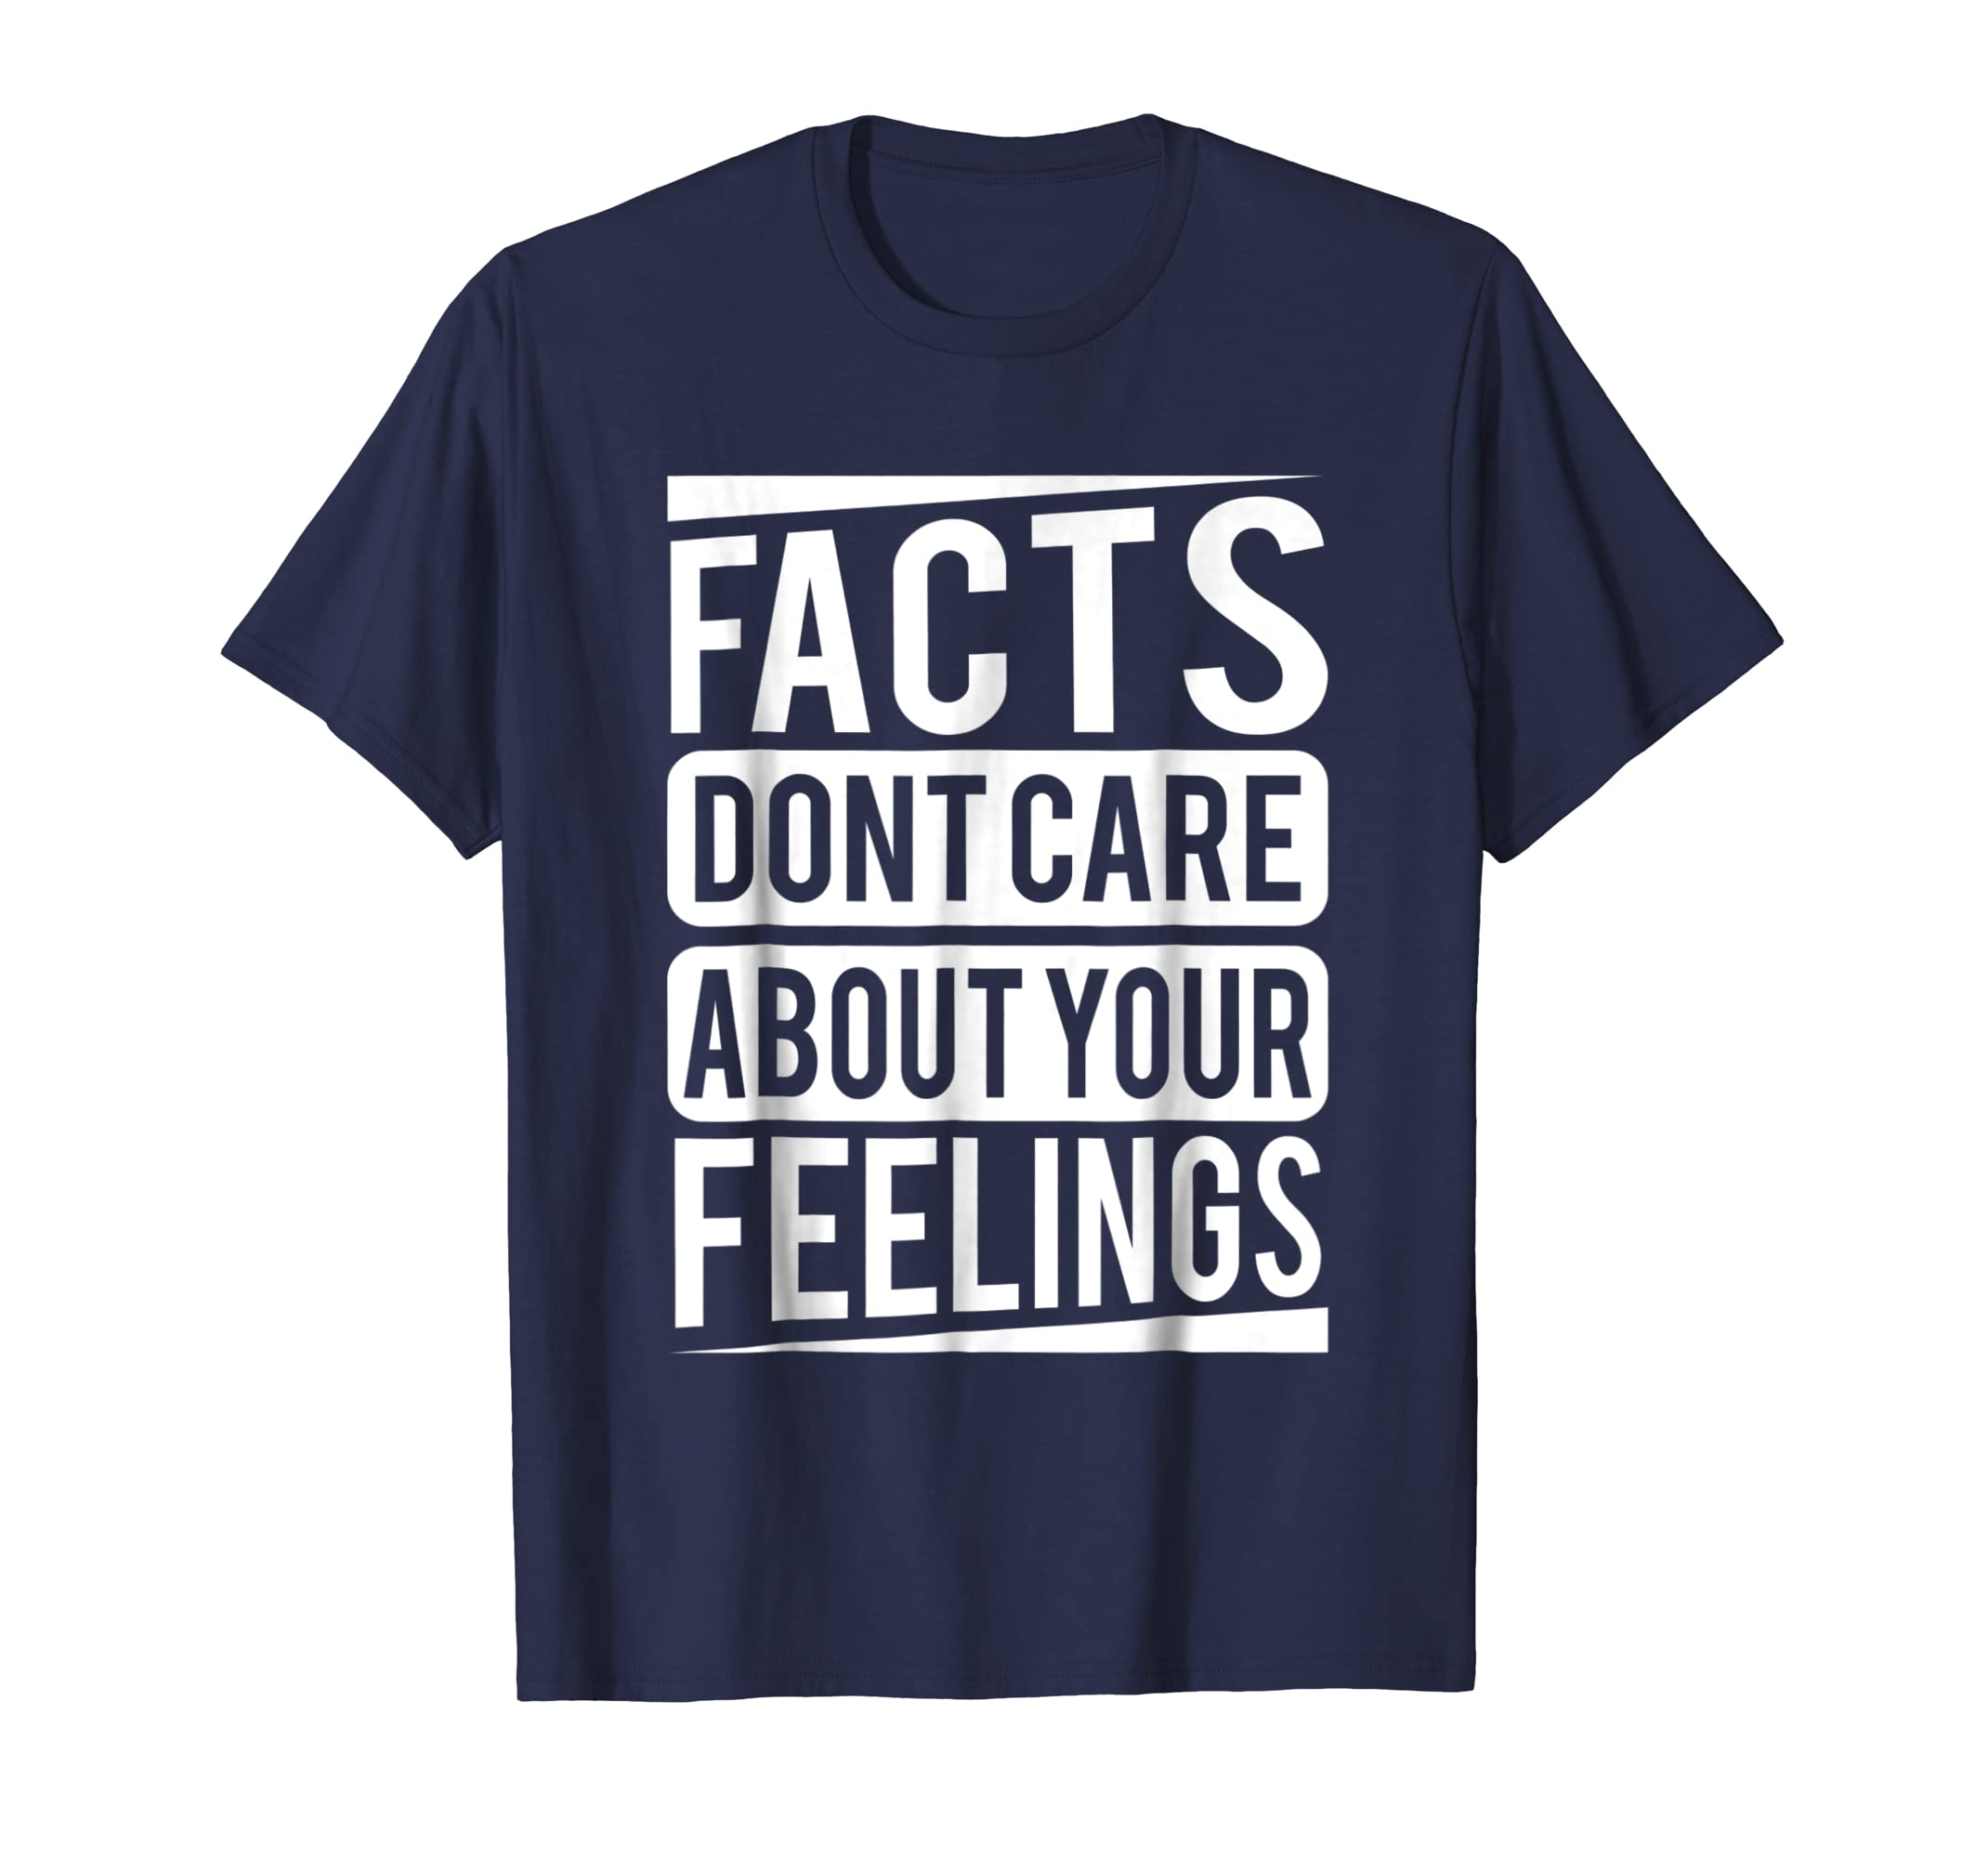 Facts dont care about your feelings Shirt-Teechatpro